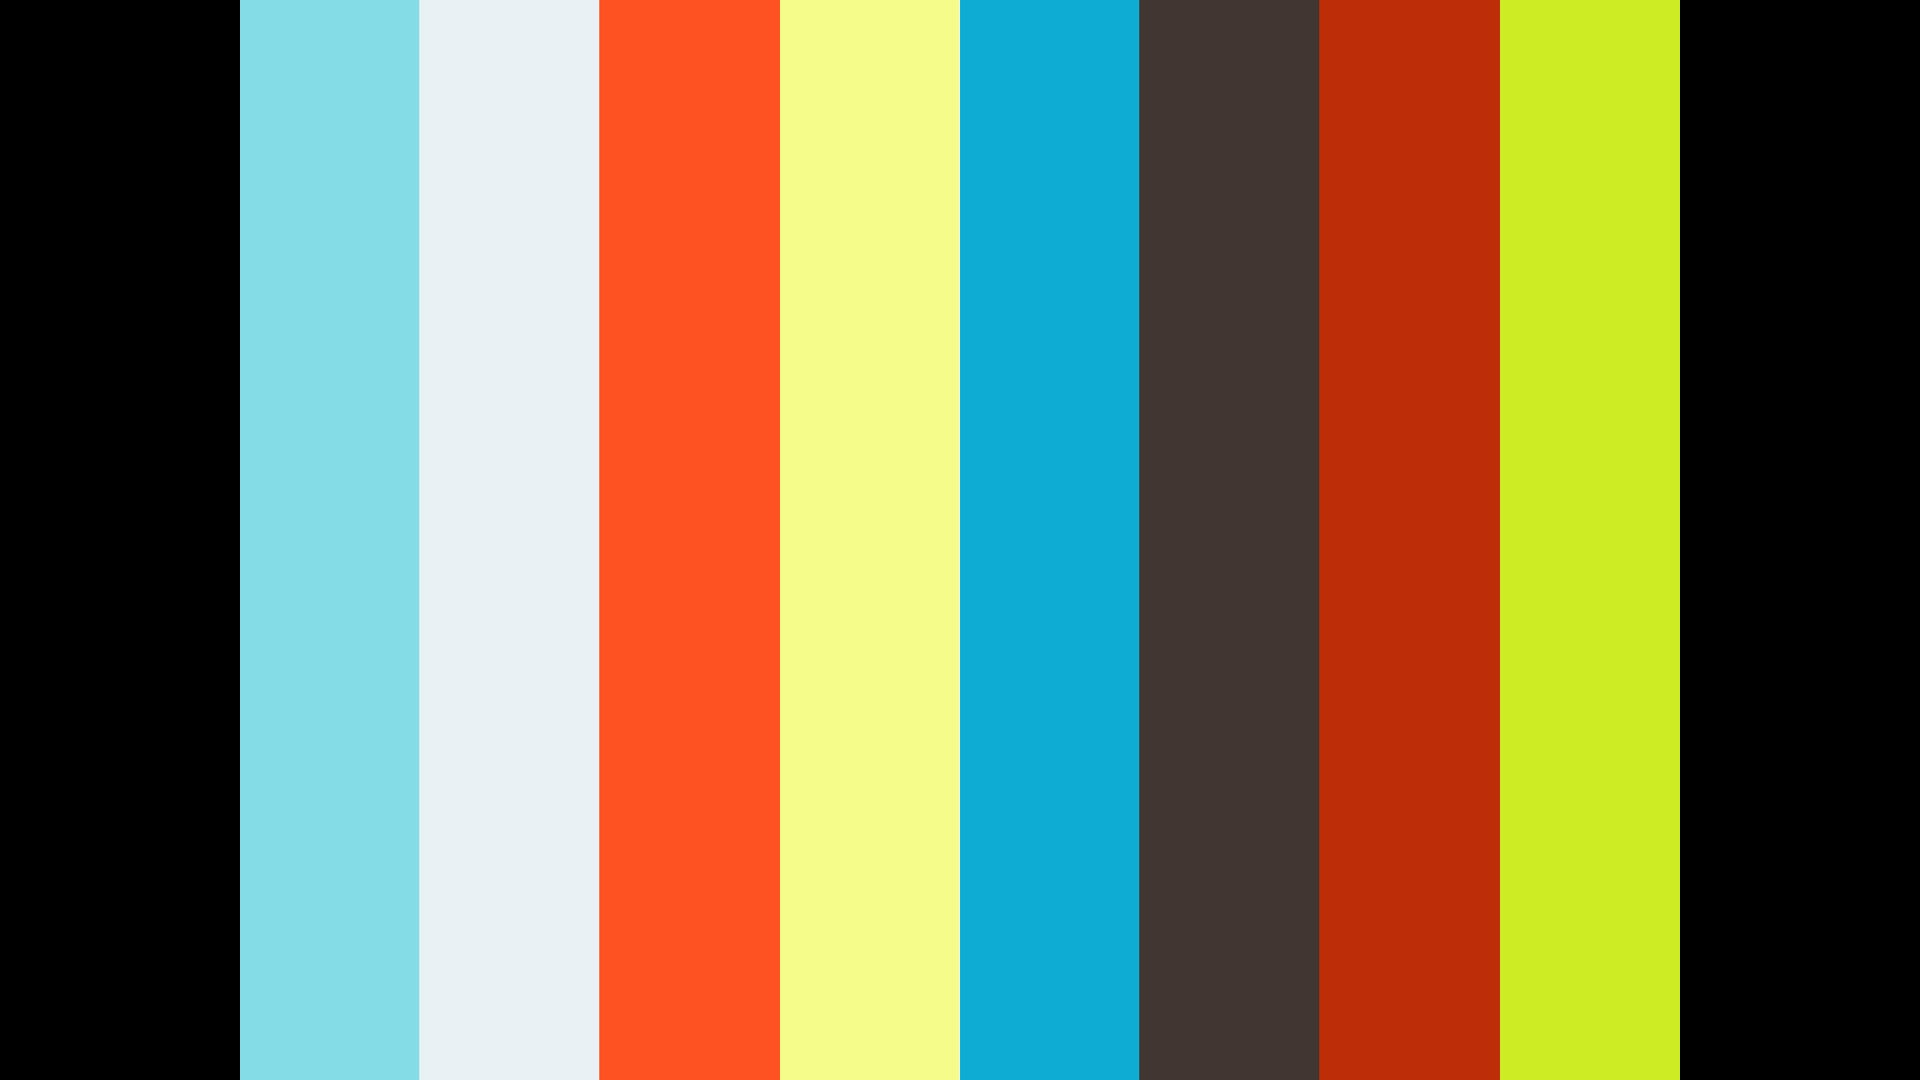 Talk by Avital Ronell [4, 2]